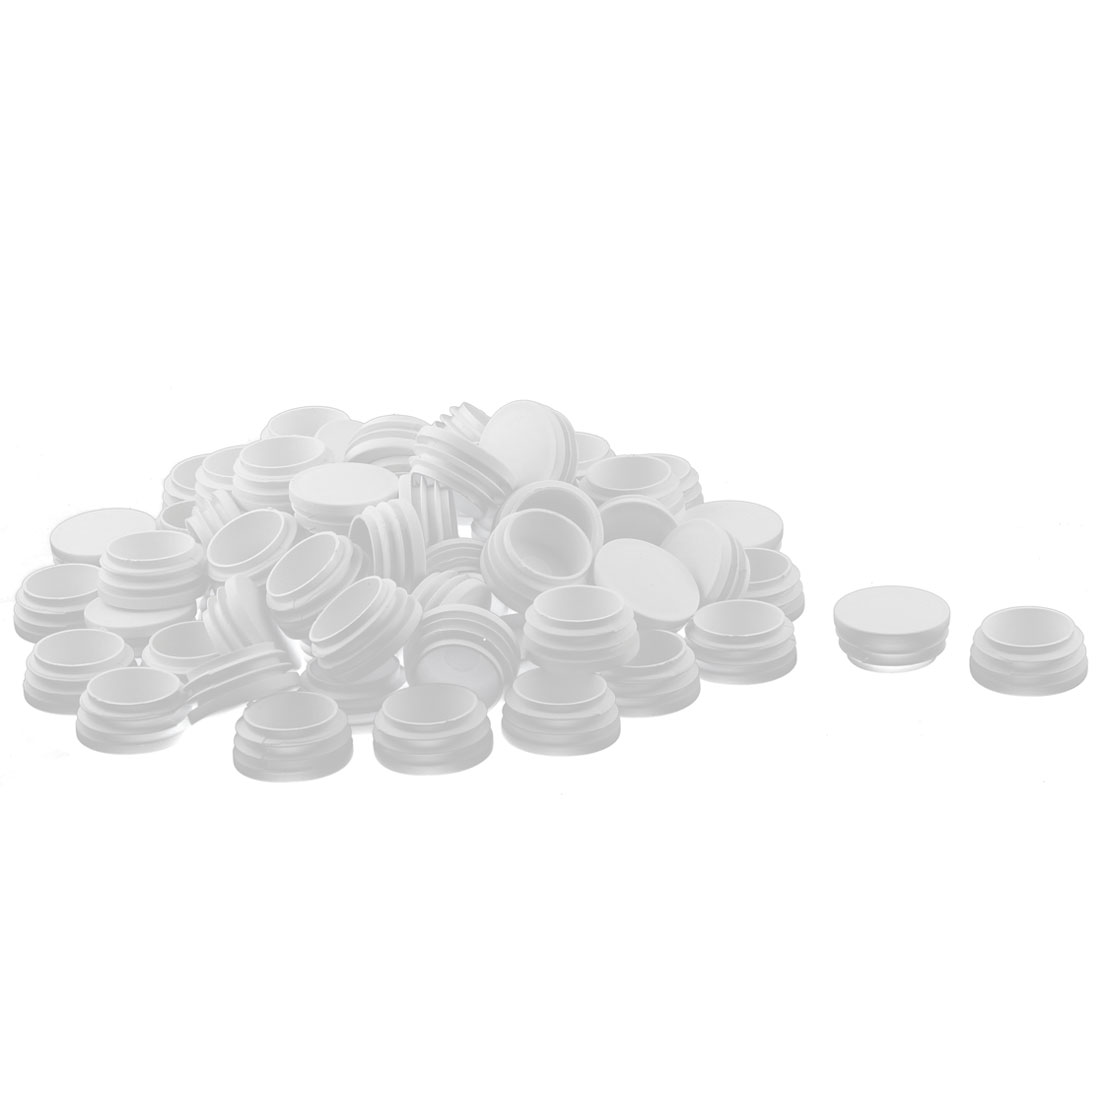 Table Chair Leg Feet Plastic Round Head Tube Insert End Cap White 70 Pcs